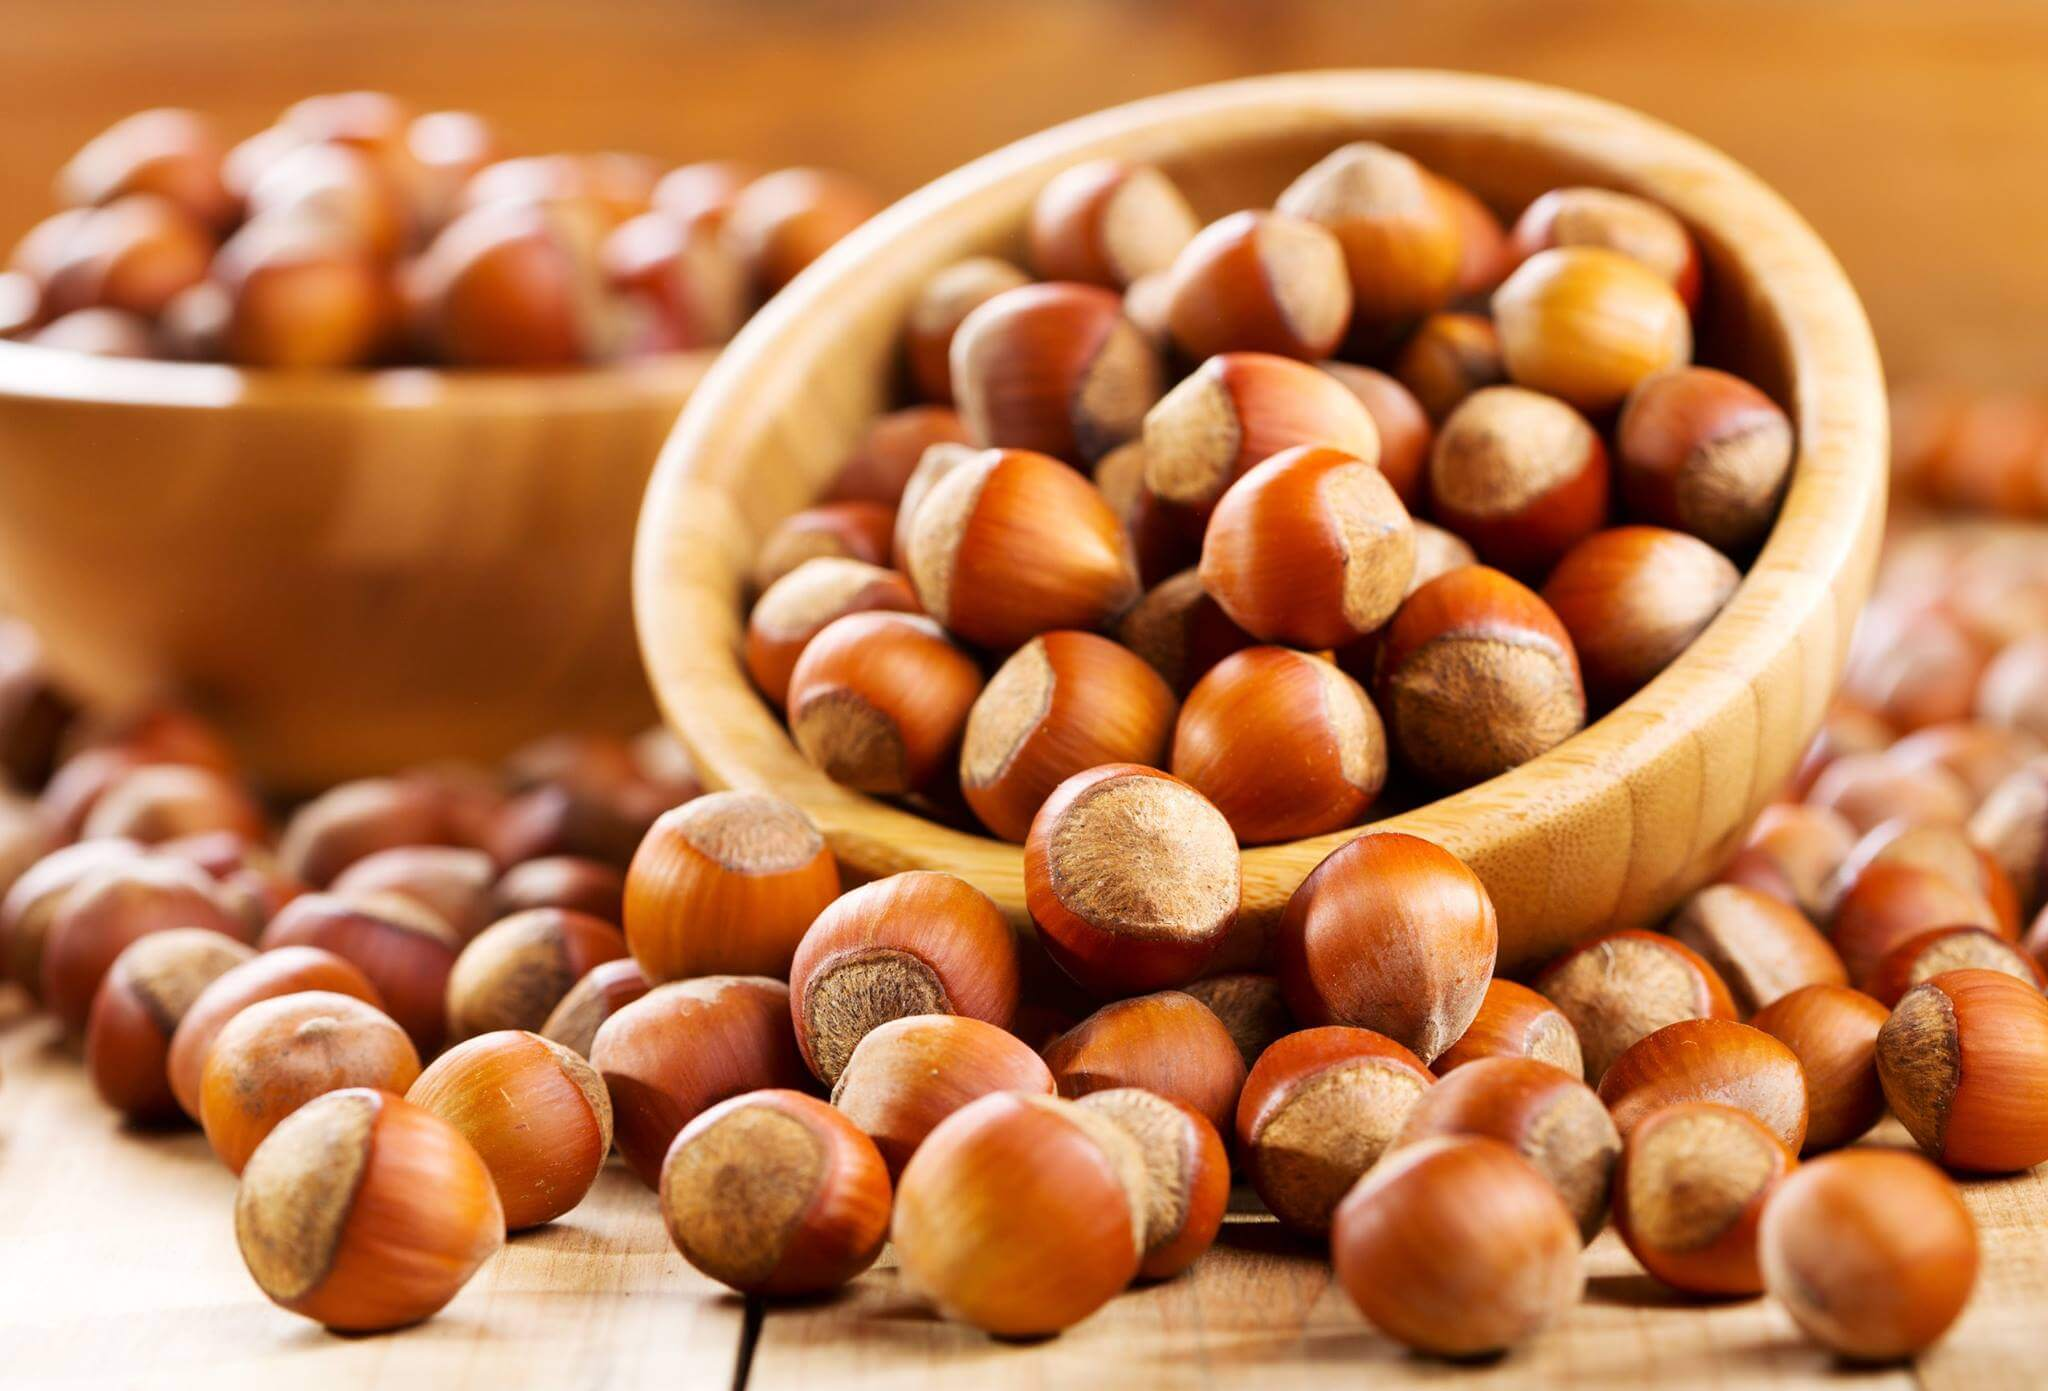 Hazelnuts to lose weight.